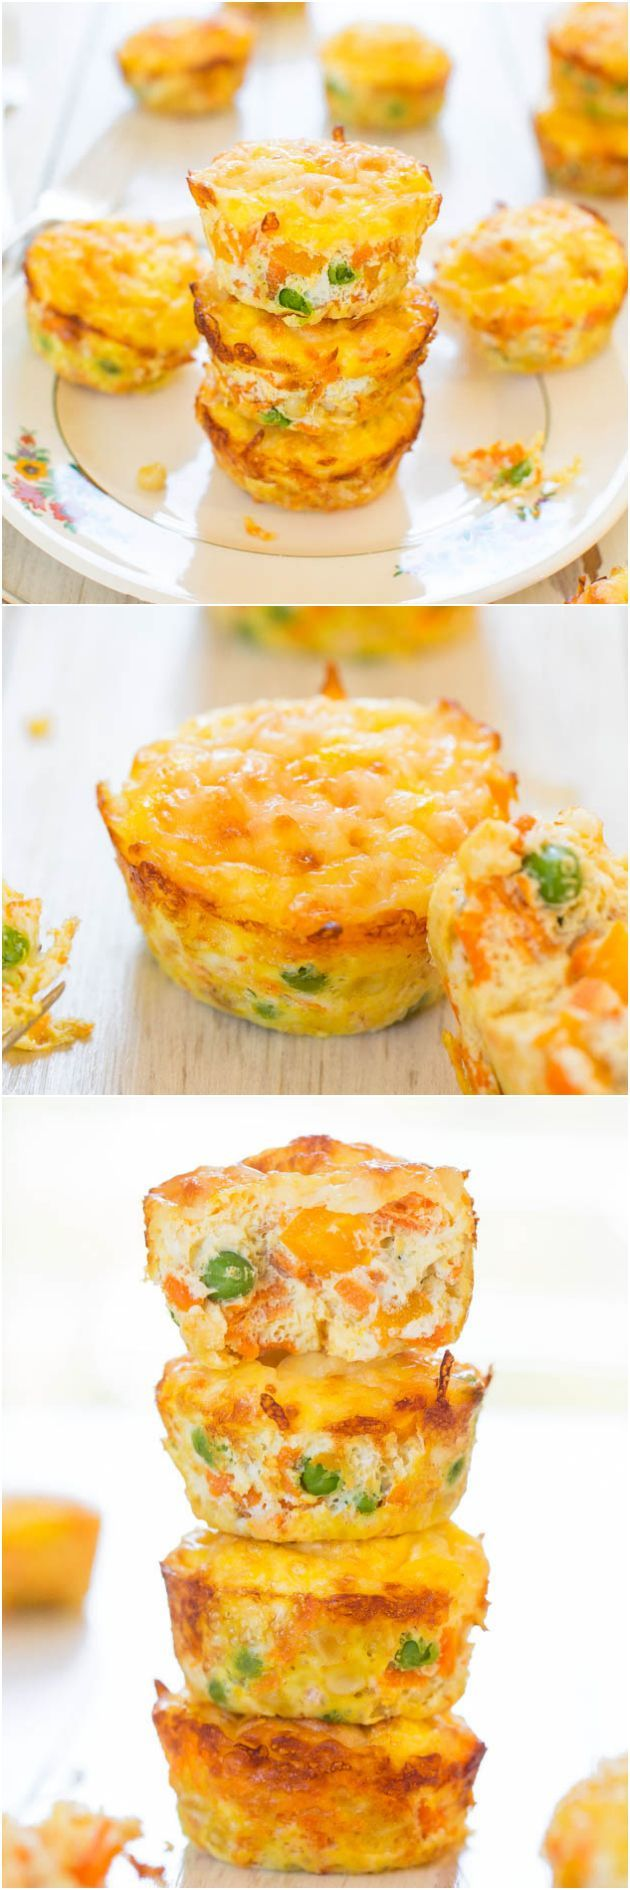 Cheese, Vegetable and Egg Muffins #egg #breakfast #muffin